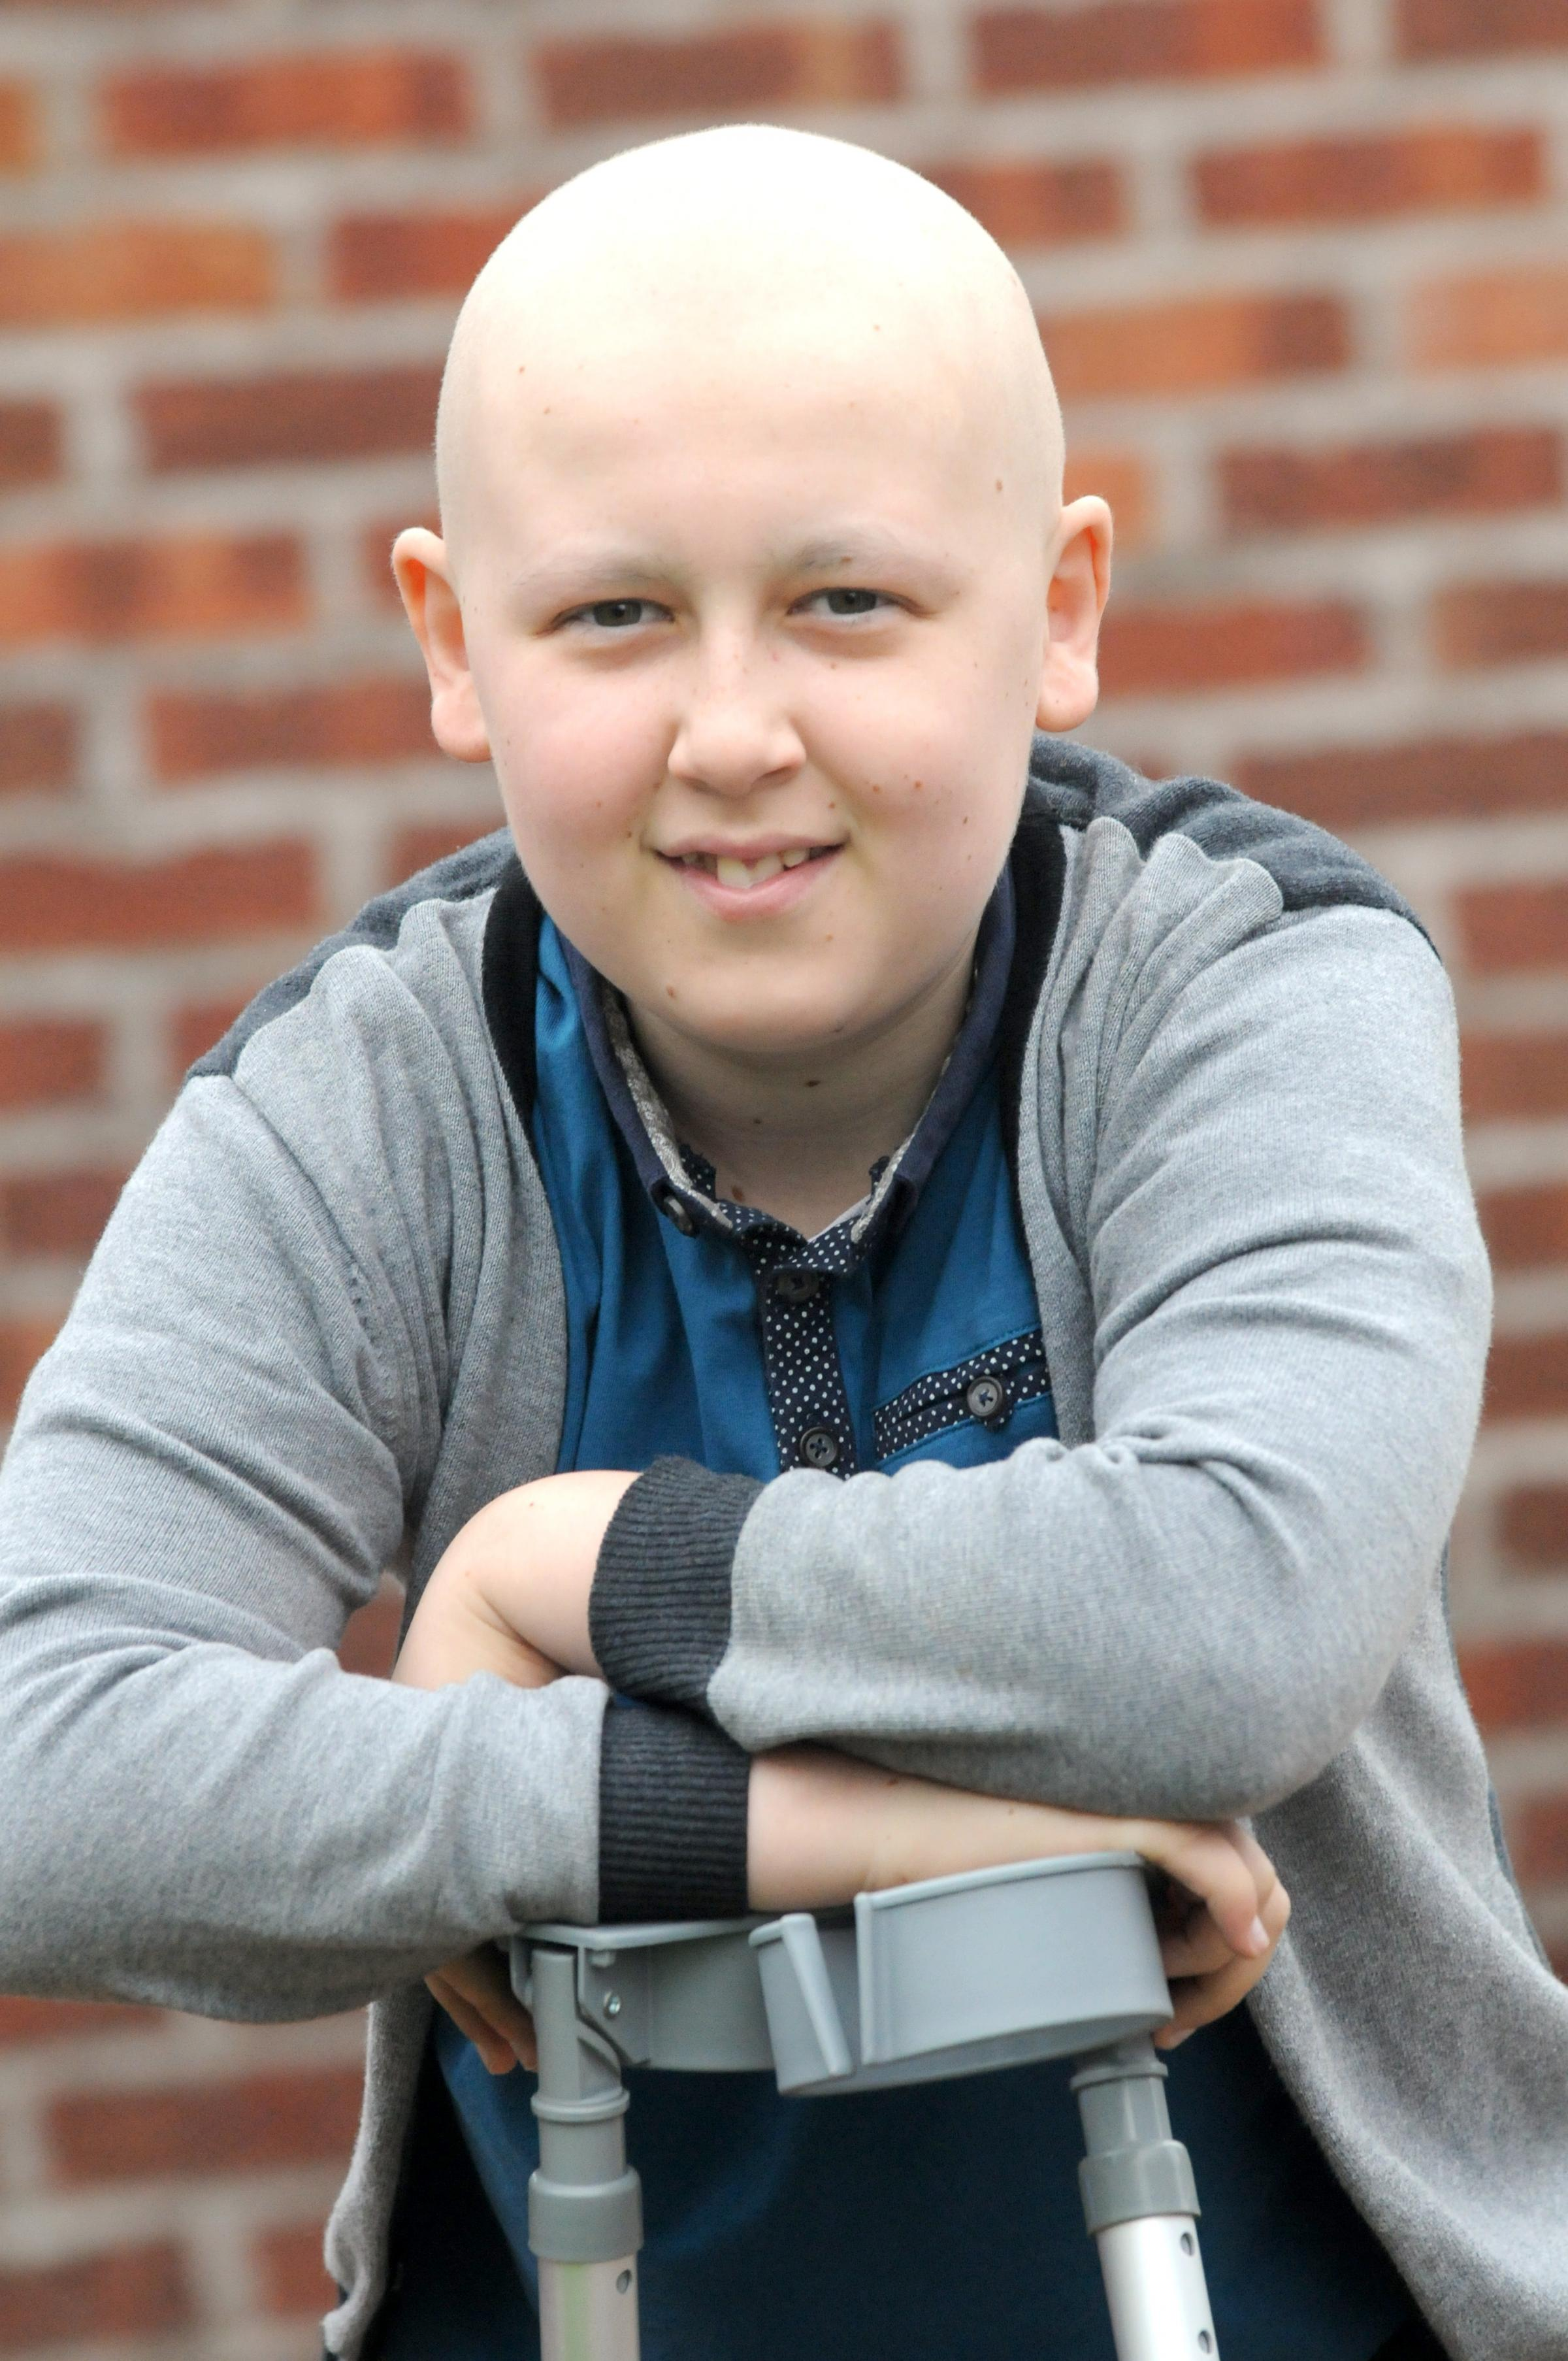 Tickets go on sale for prom night in memory of Harrison Ledsham